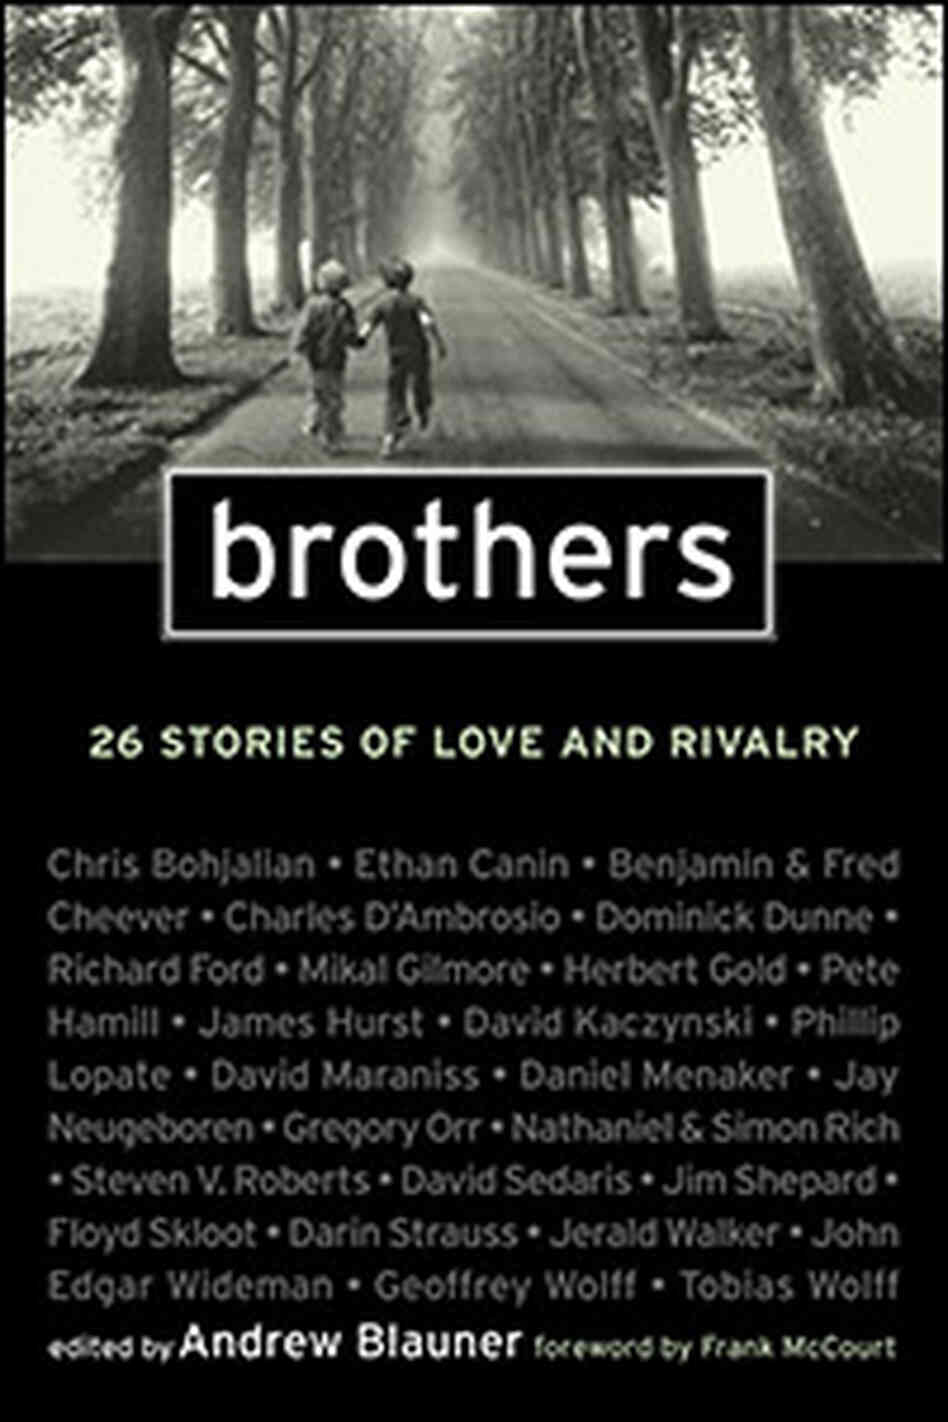 'Brothers: 26 Stories of Love and Rivalry'